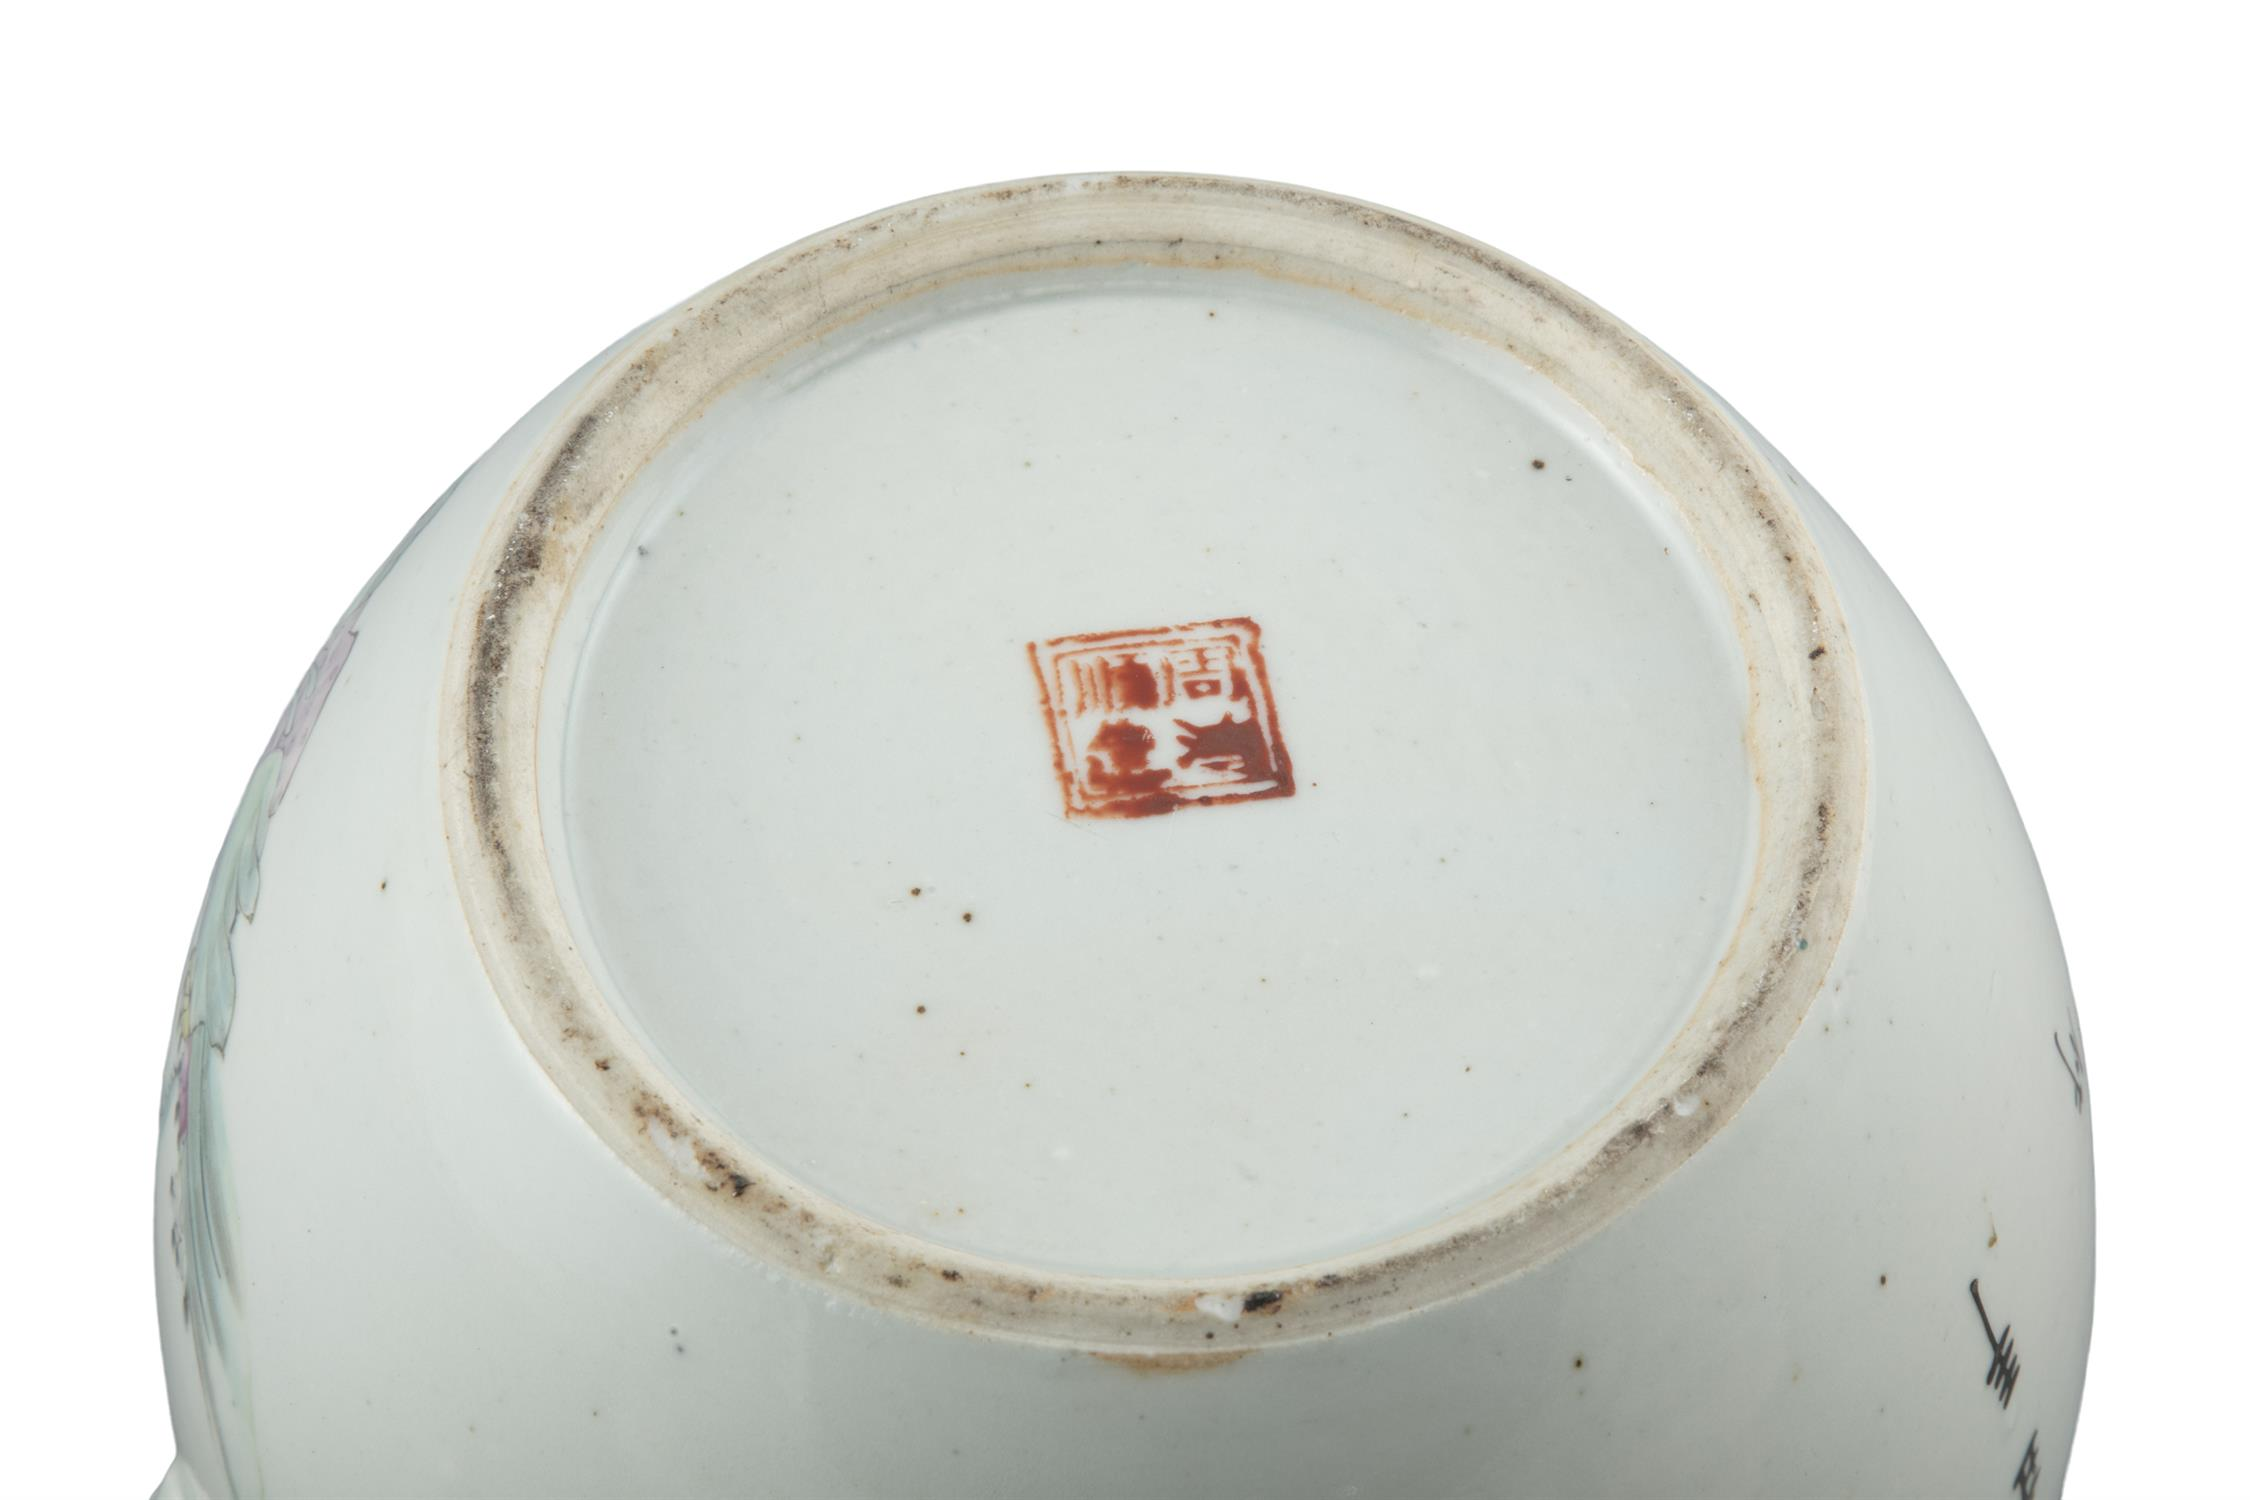 A QIANJIANG PORCELAIN TUREEN, KAMCHENG China, Republican period Adorned in the famille rose - Image 5 of 11